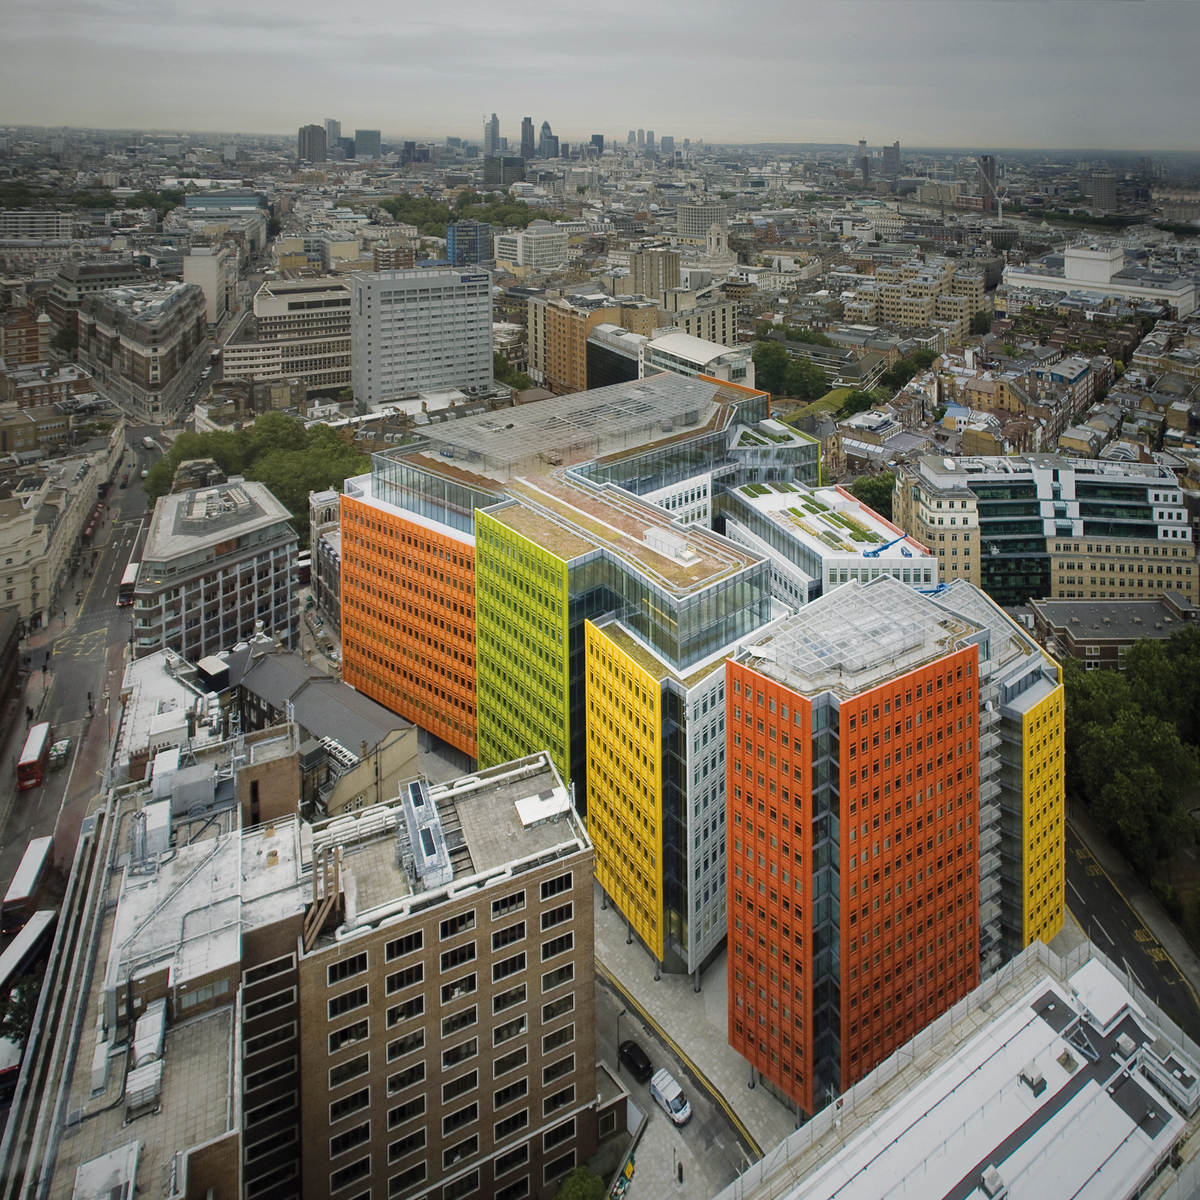 Central St. Giles in London, GB by Renzo Piano (Building Workshop); TERRART(r) Facades- NBK (a Hunter Douglas Company)